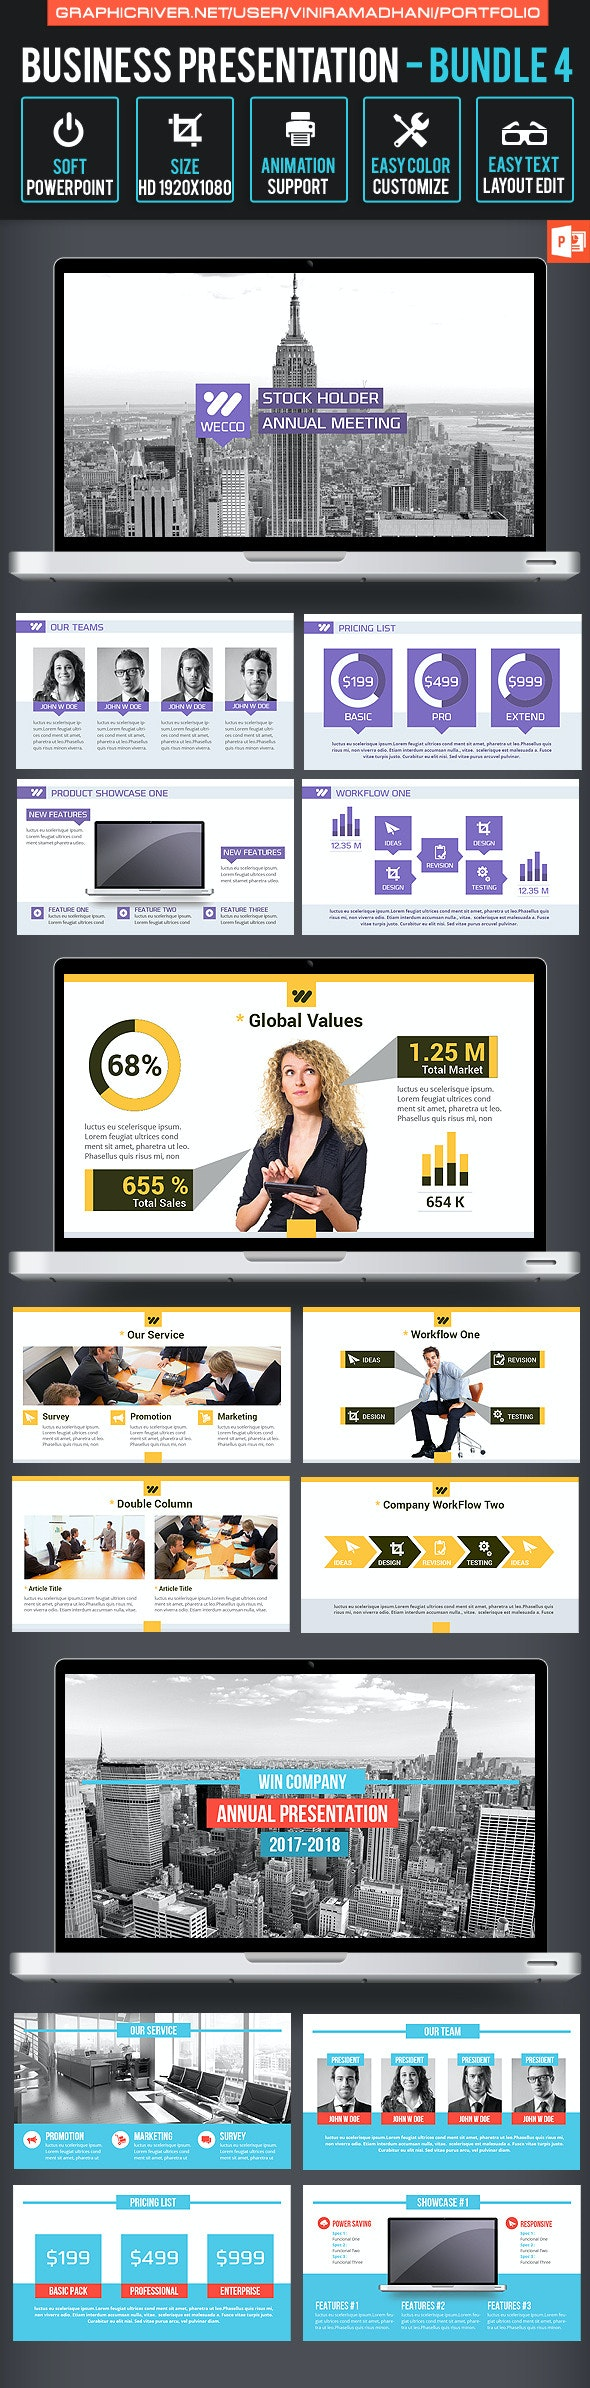 Business Presentation Bundle 4 - Business PowerPoint Templates